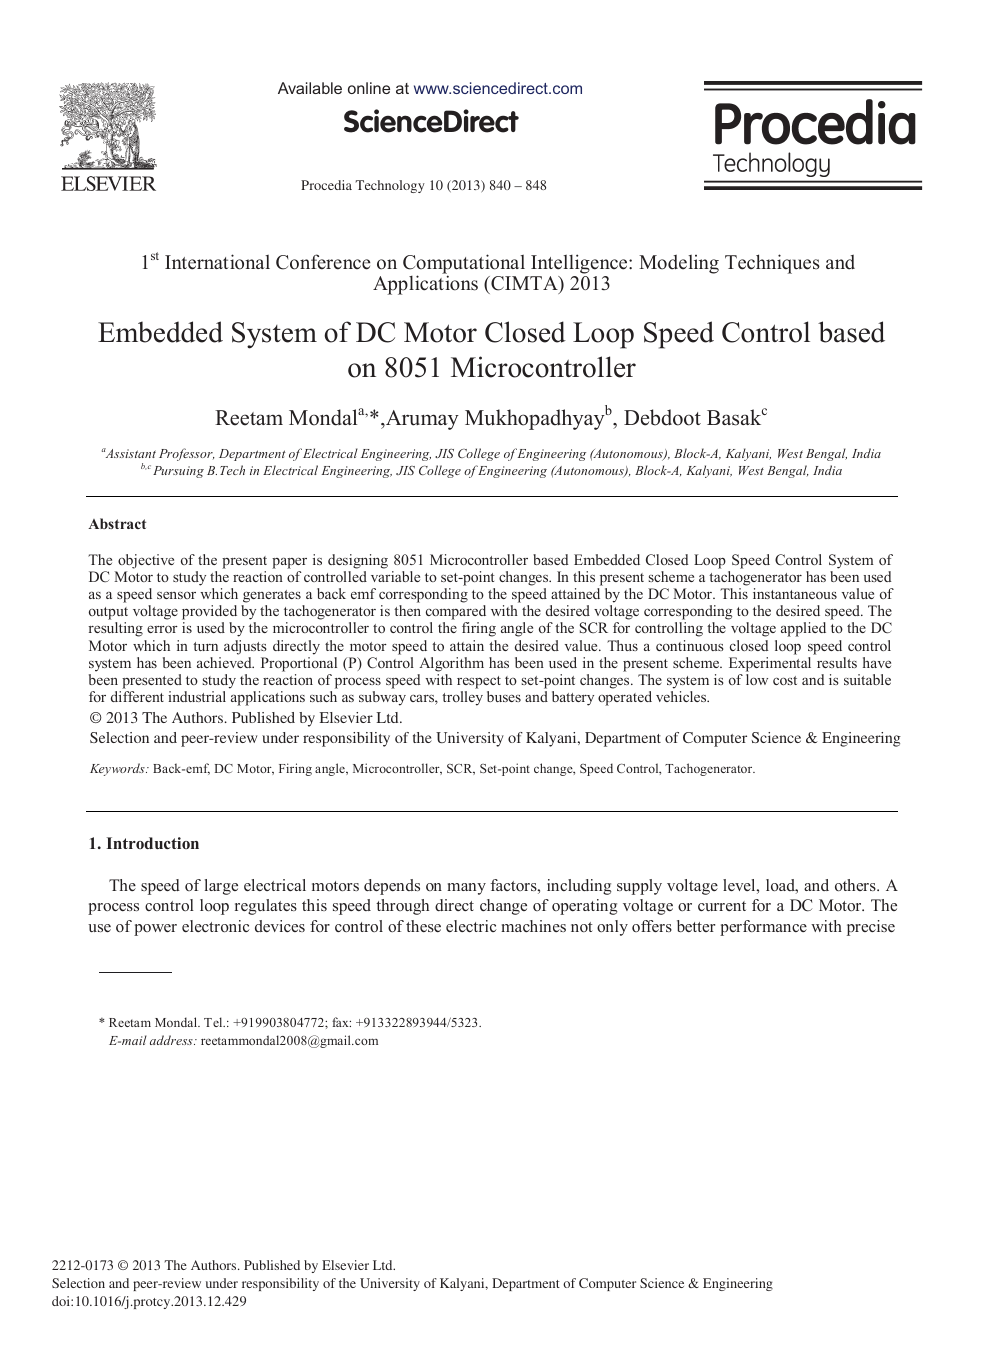 Embedded System of DC Motor Closed Loop Speed Control based